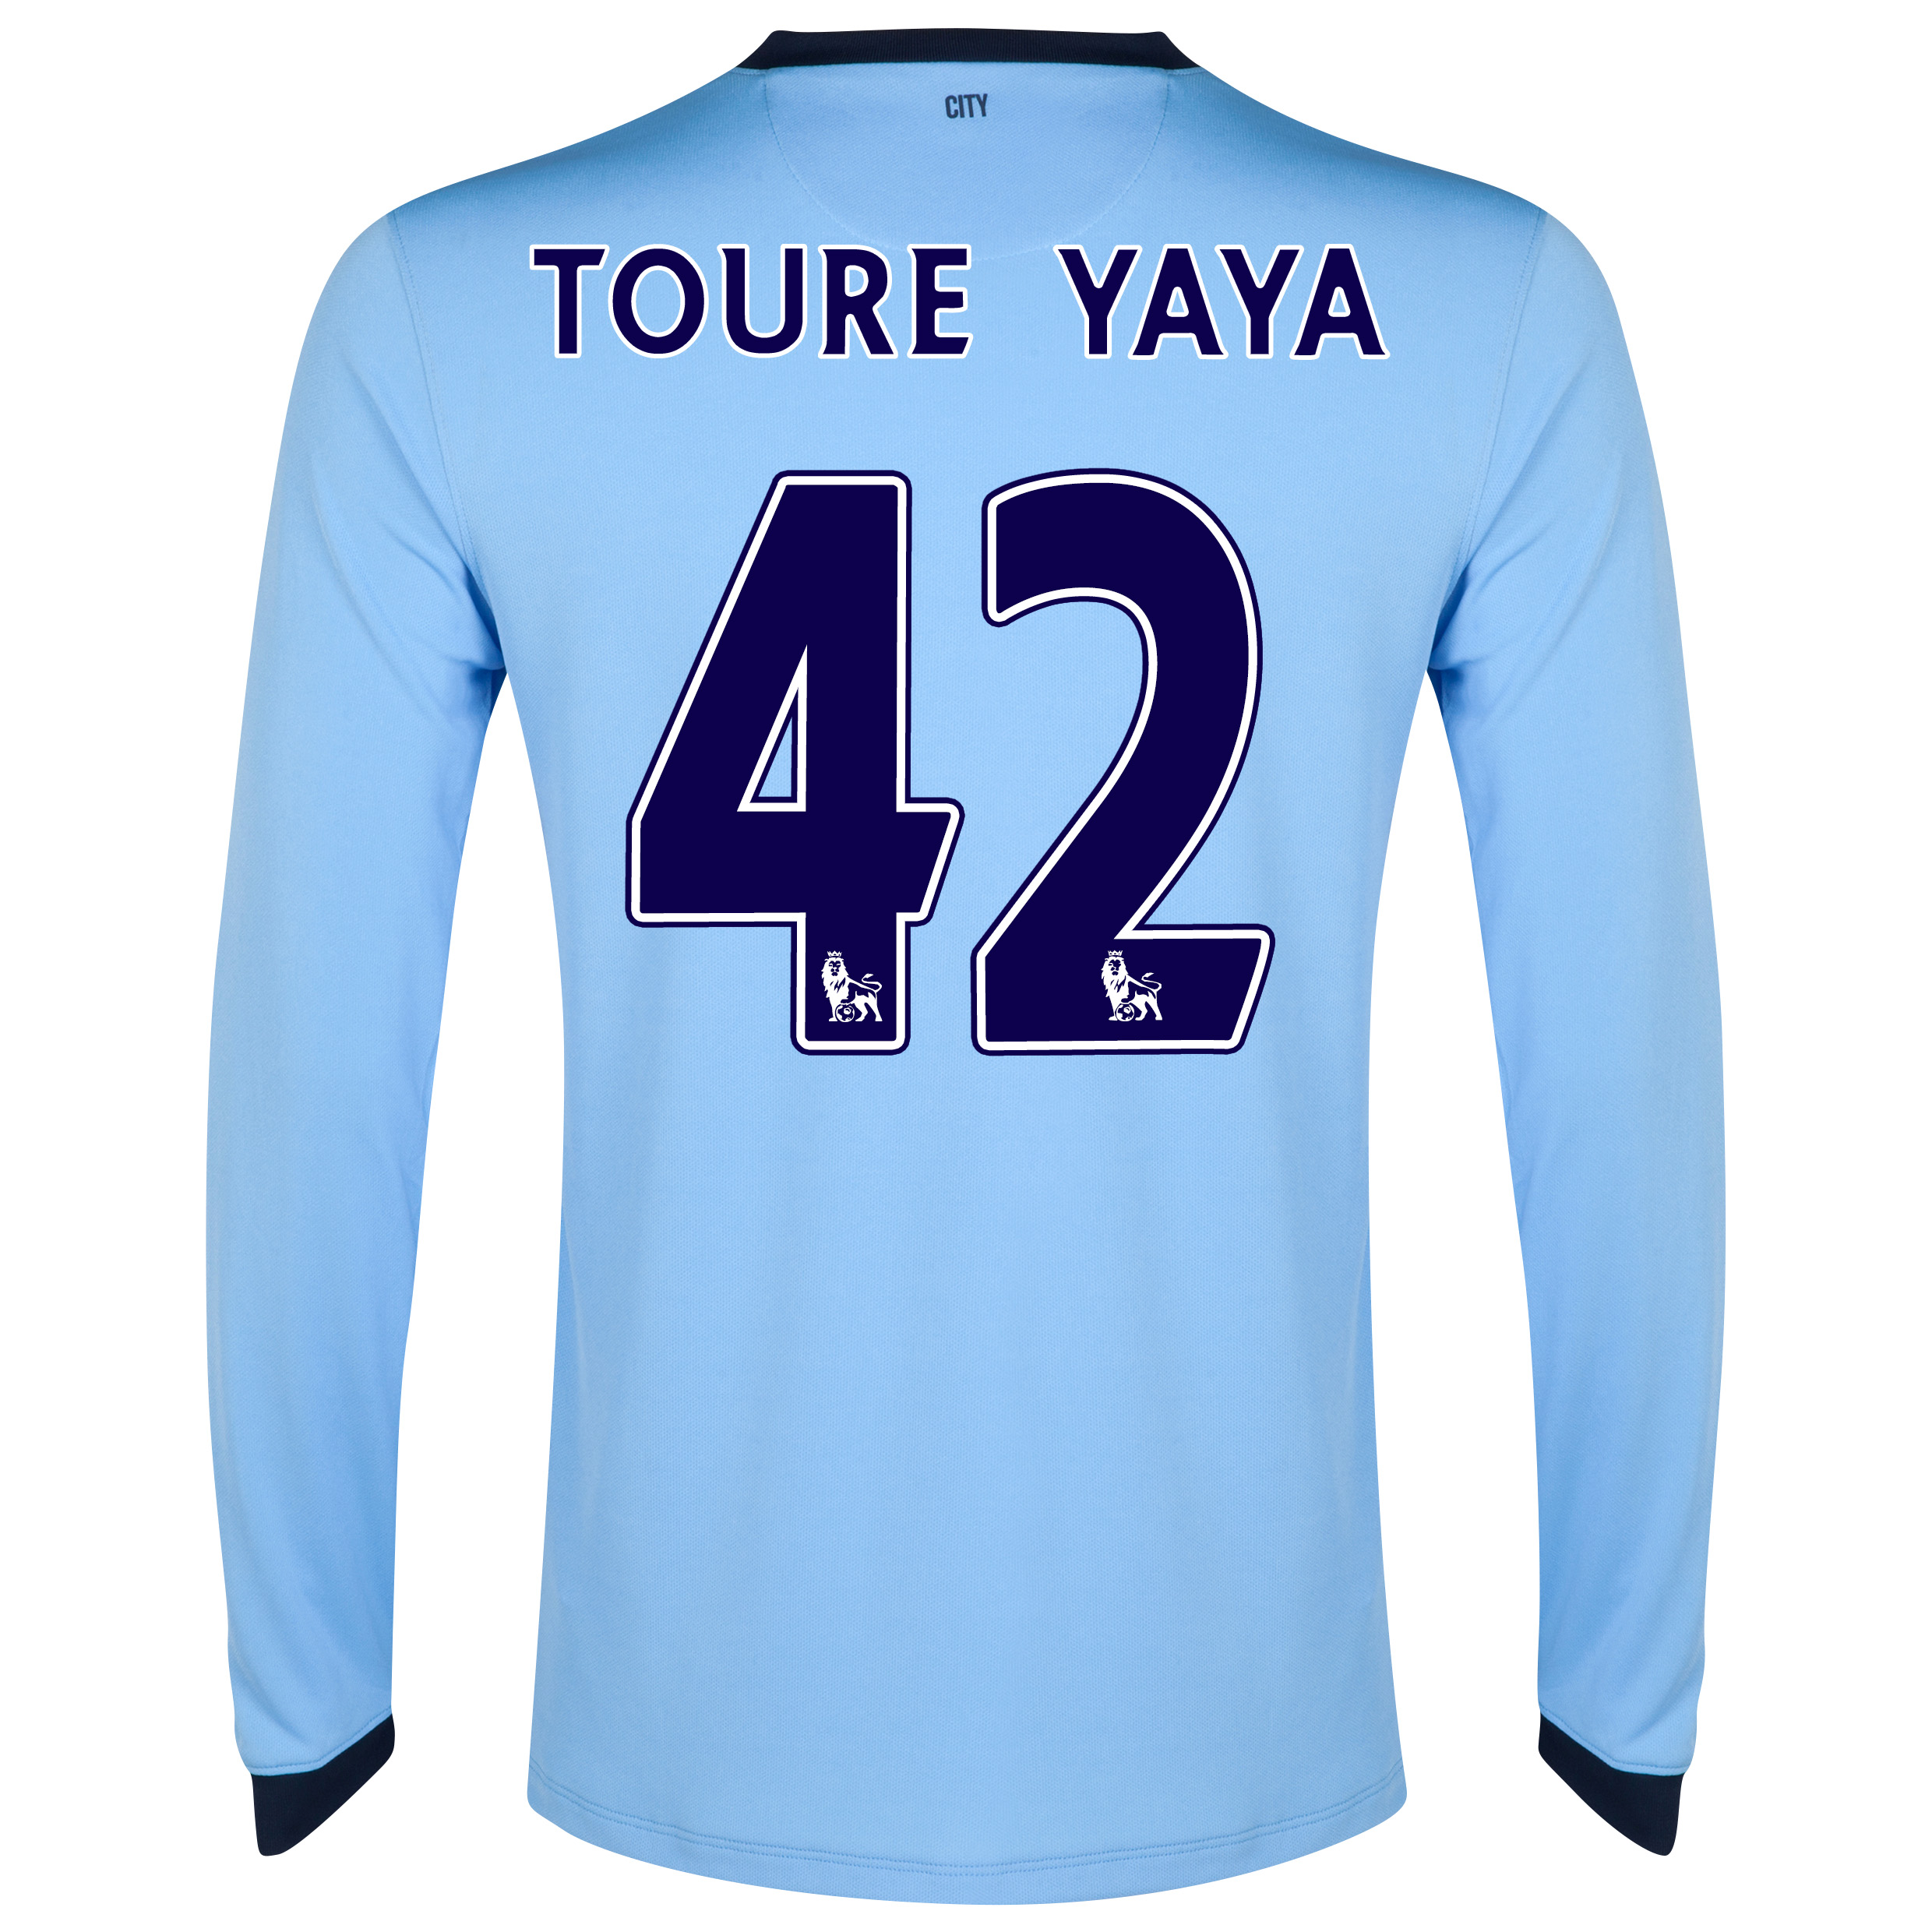 Manchester City Home Shirt 2014/15 - Long Sleeve Sky Blue with Toure Yaya 42 printing